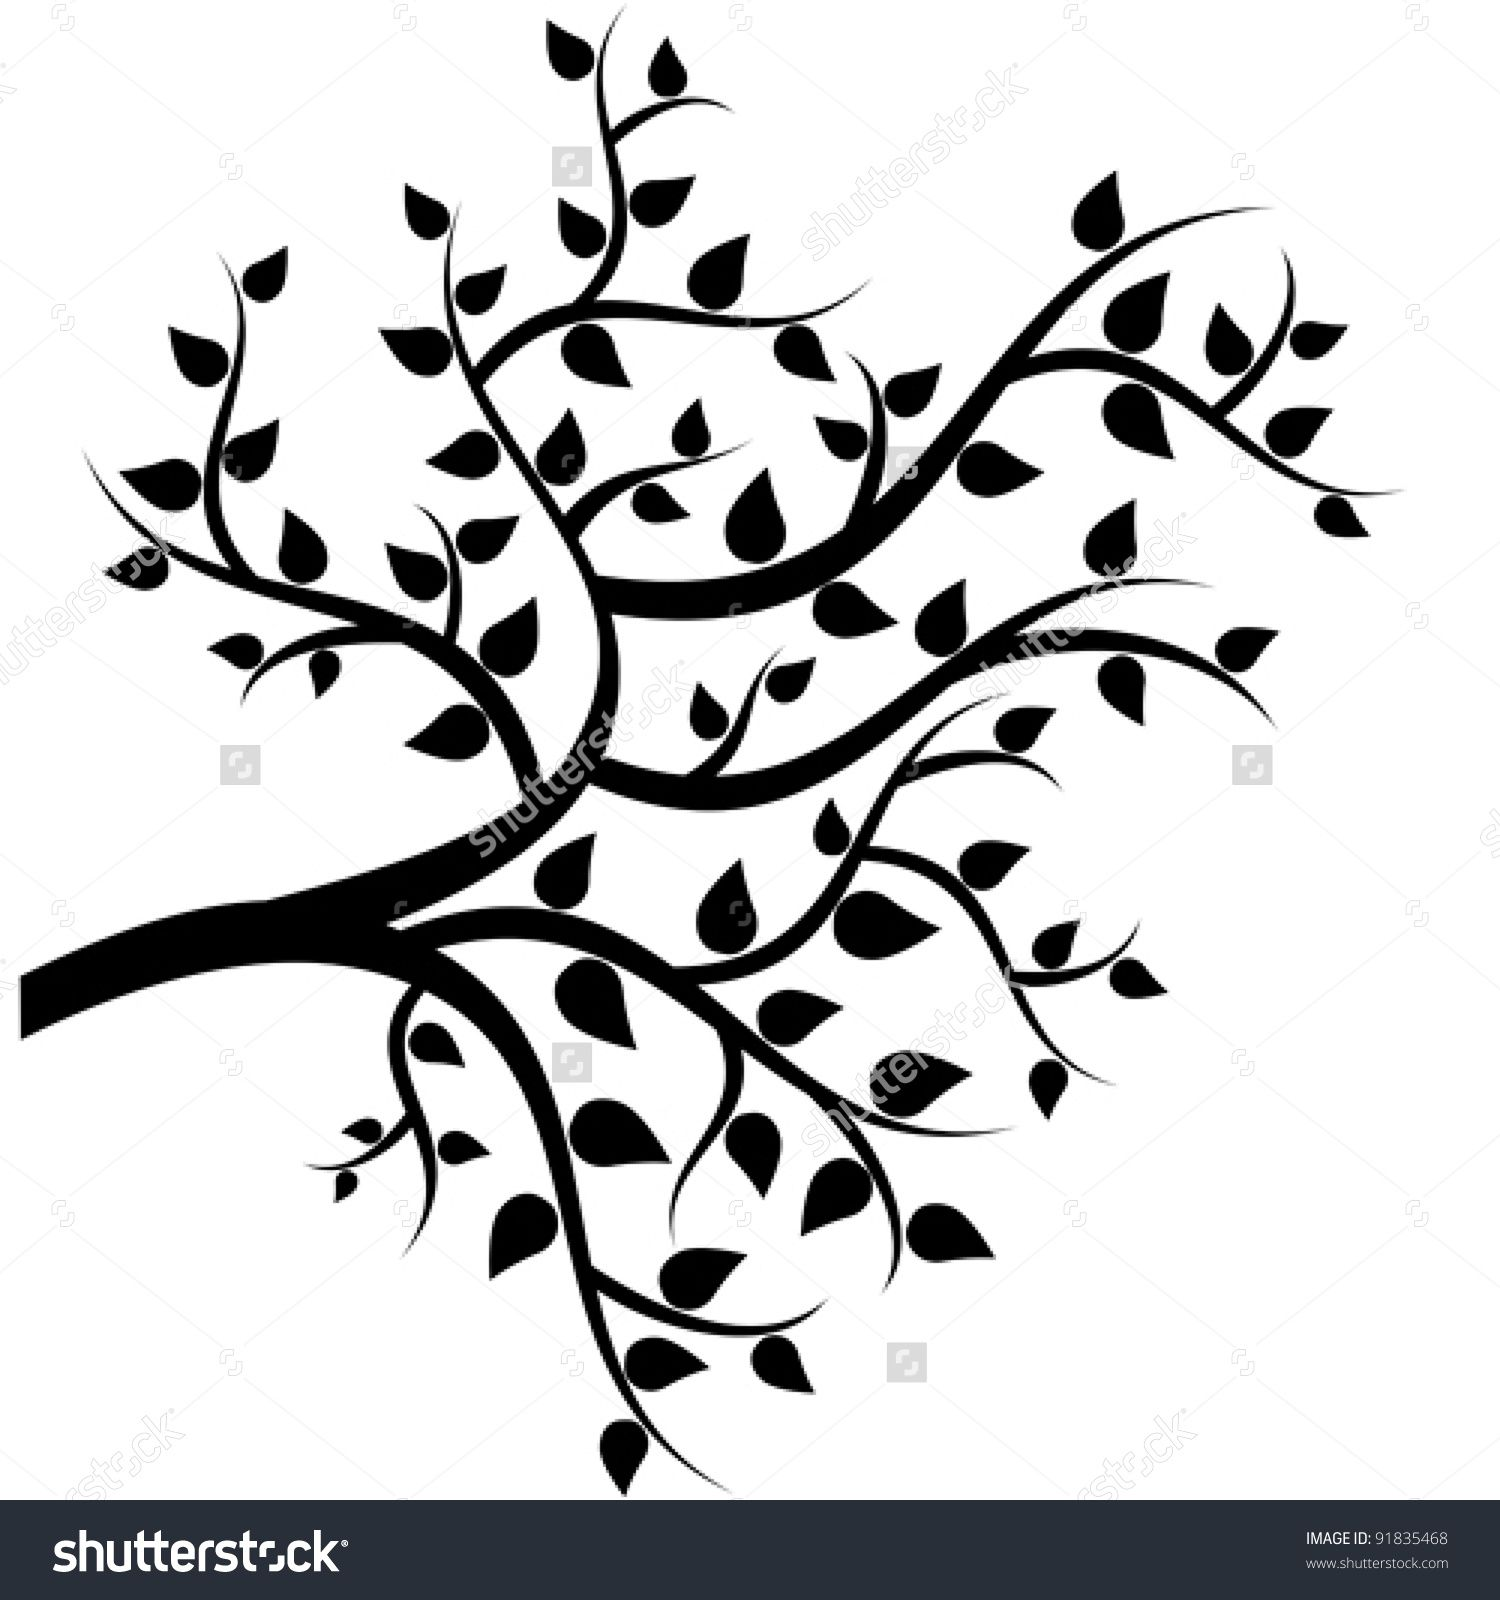 Related image Leaf drawing, Branch drawing, Tree drawing